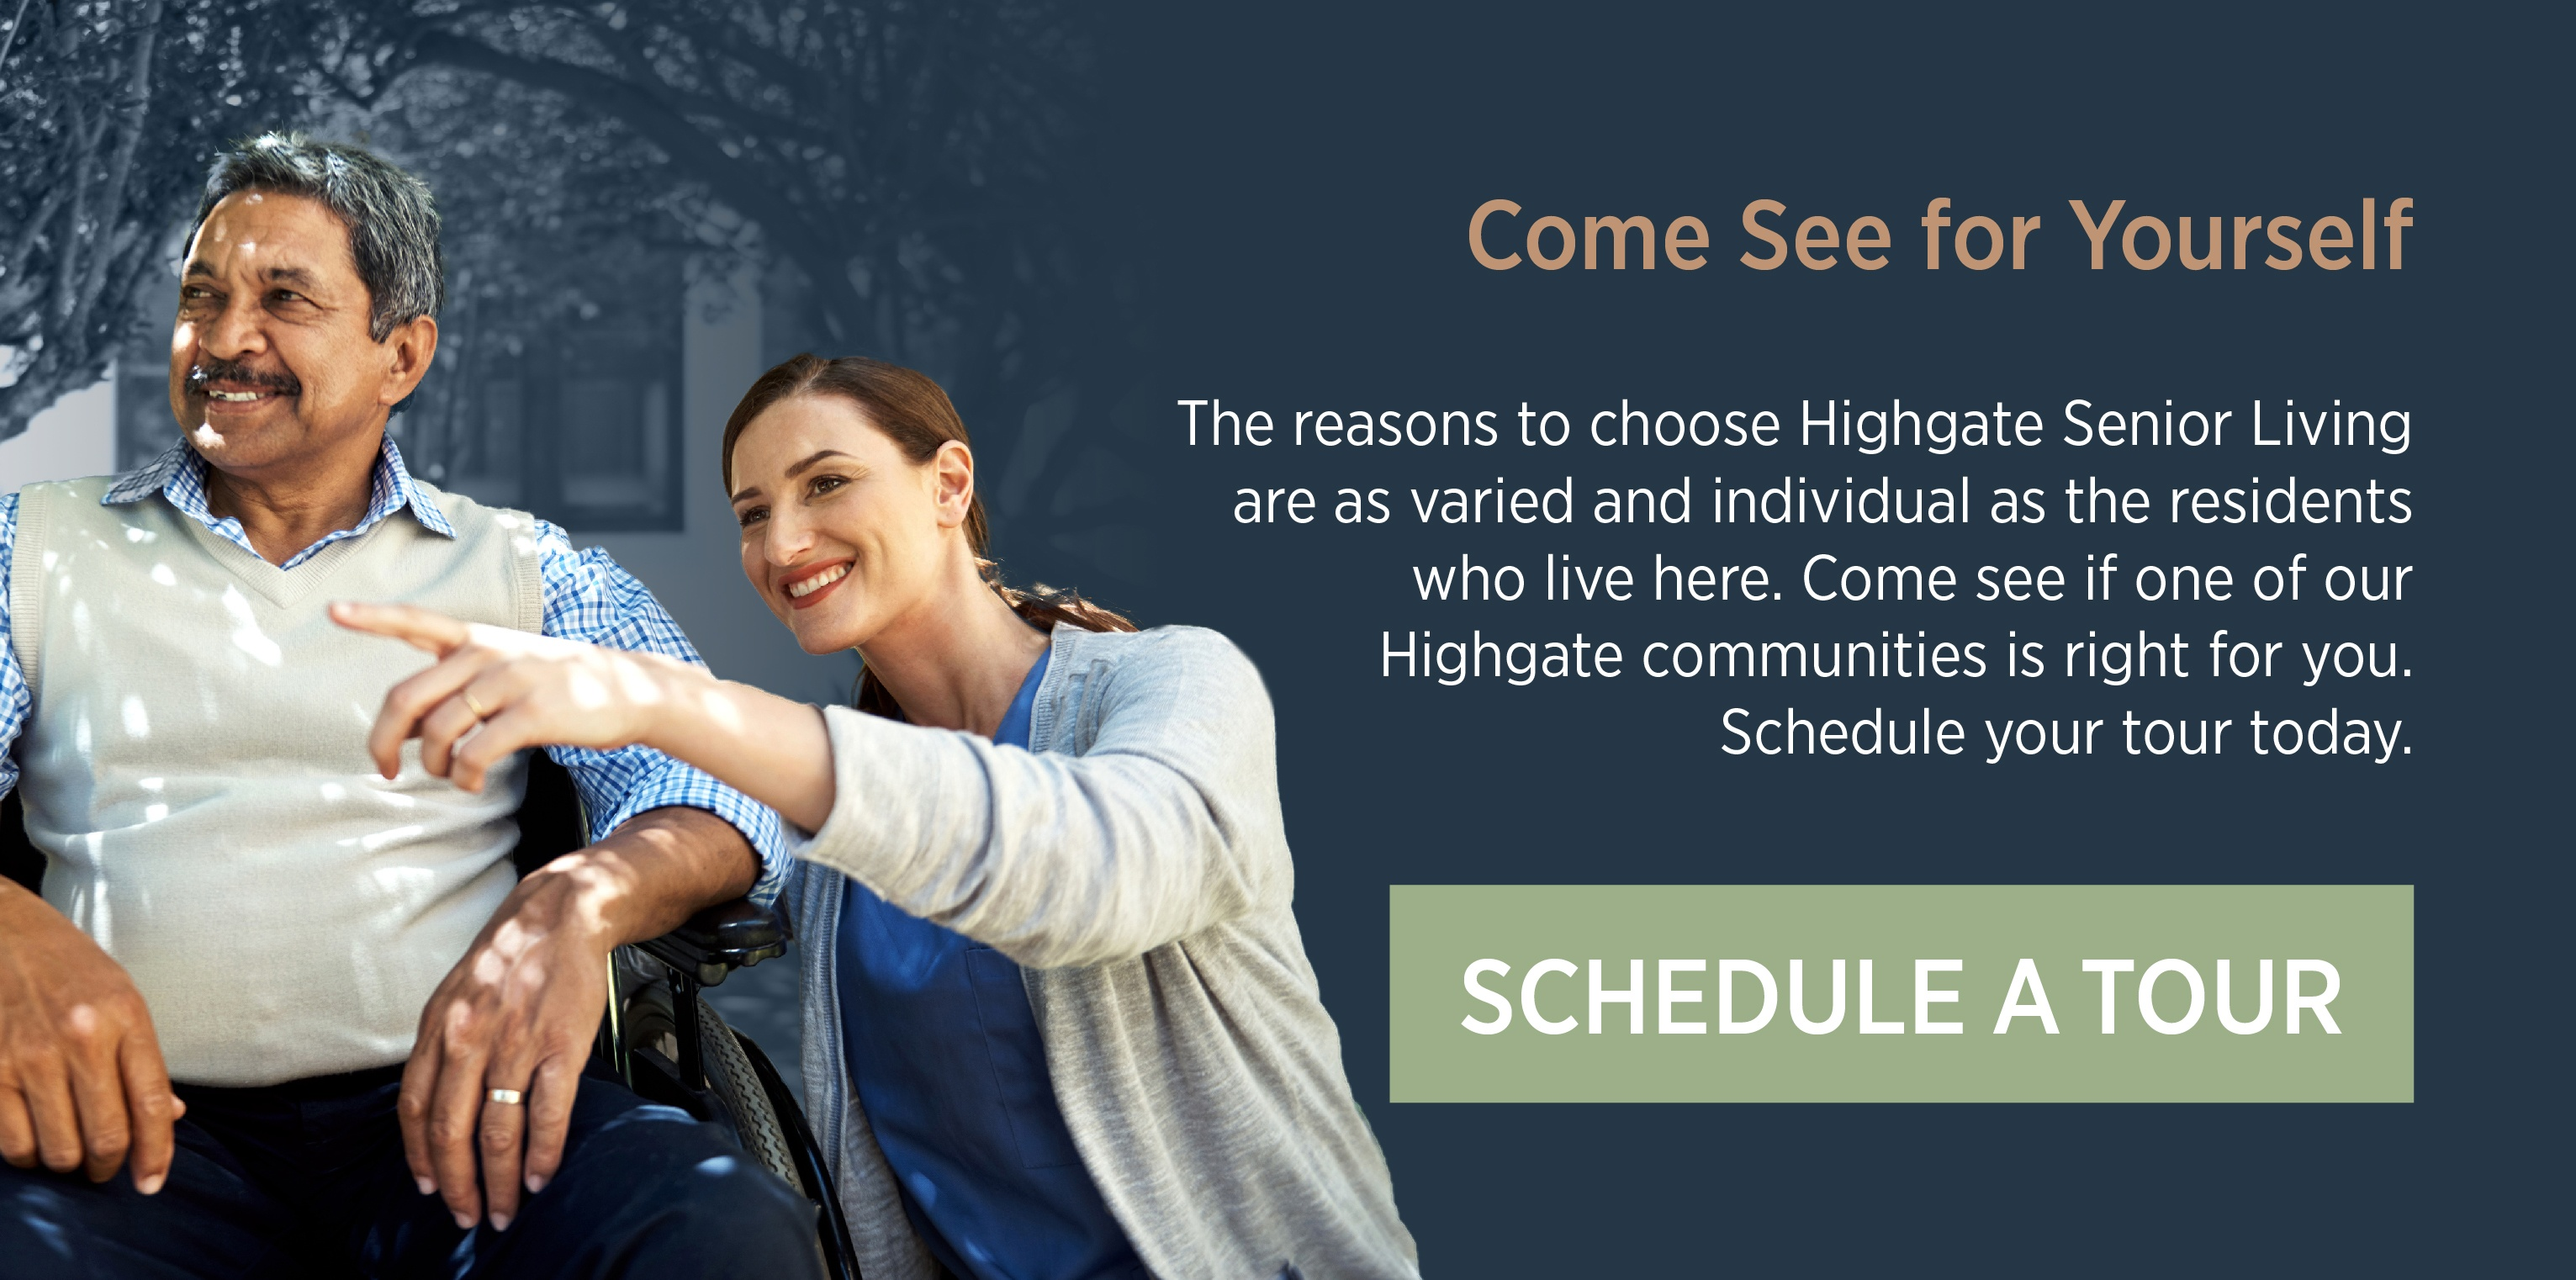 Come See for Yourself. The reasons to choose Highgate Senior Living are as varied and individual as the residents who live here. Come see if one of our Highgate communities is right for you. Schedule your tour today. Schedule a Tour.